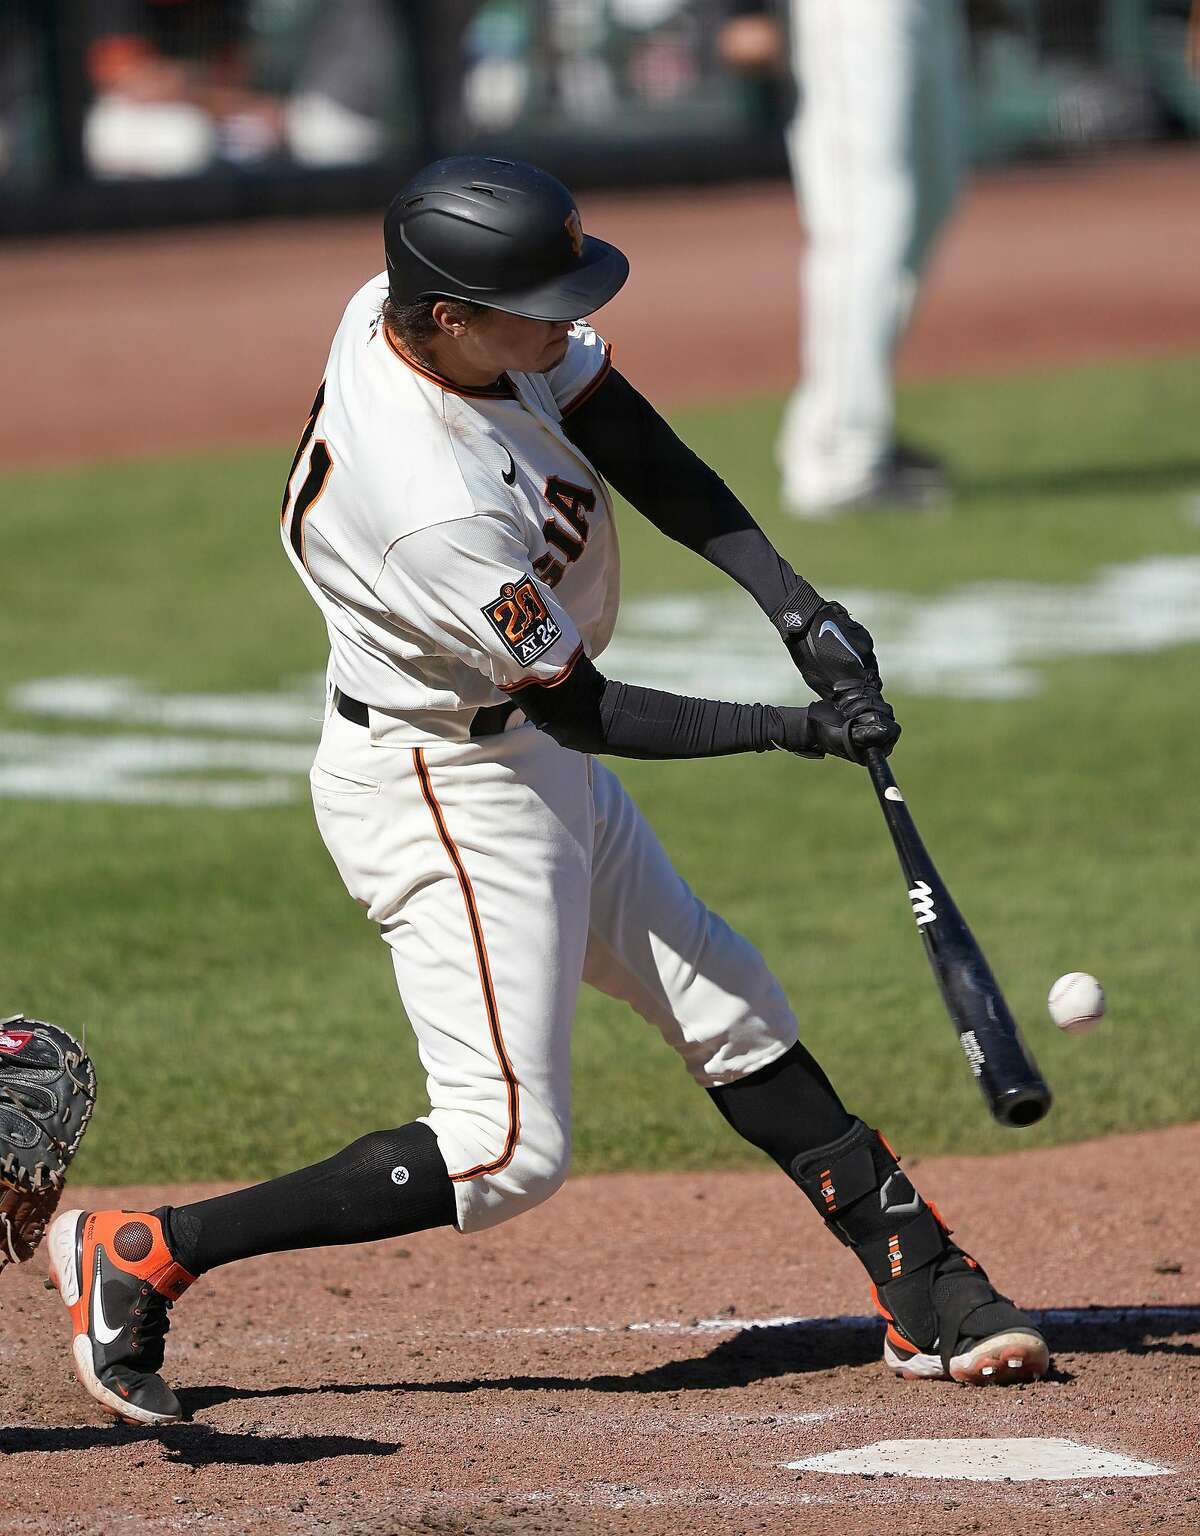 SAN FRANCISCO, CALIFORNIA - SEPTEMBER 17: Wilmer Flores #41 of the San Francisco Giants hits a two-run RBI triple against the Seattle Mariners in the top of the seventh inning at Oracle Park on September 17, 2020 in San Francisco, California. (Photo by Thearon W. Henderson/Getty Images)